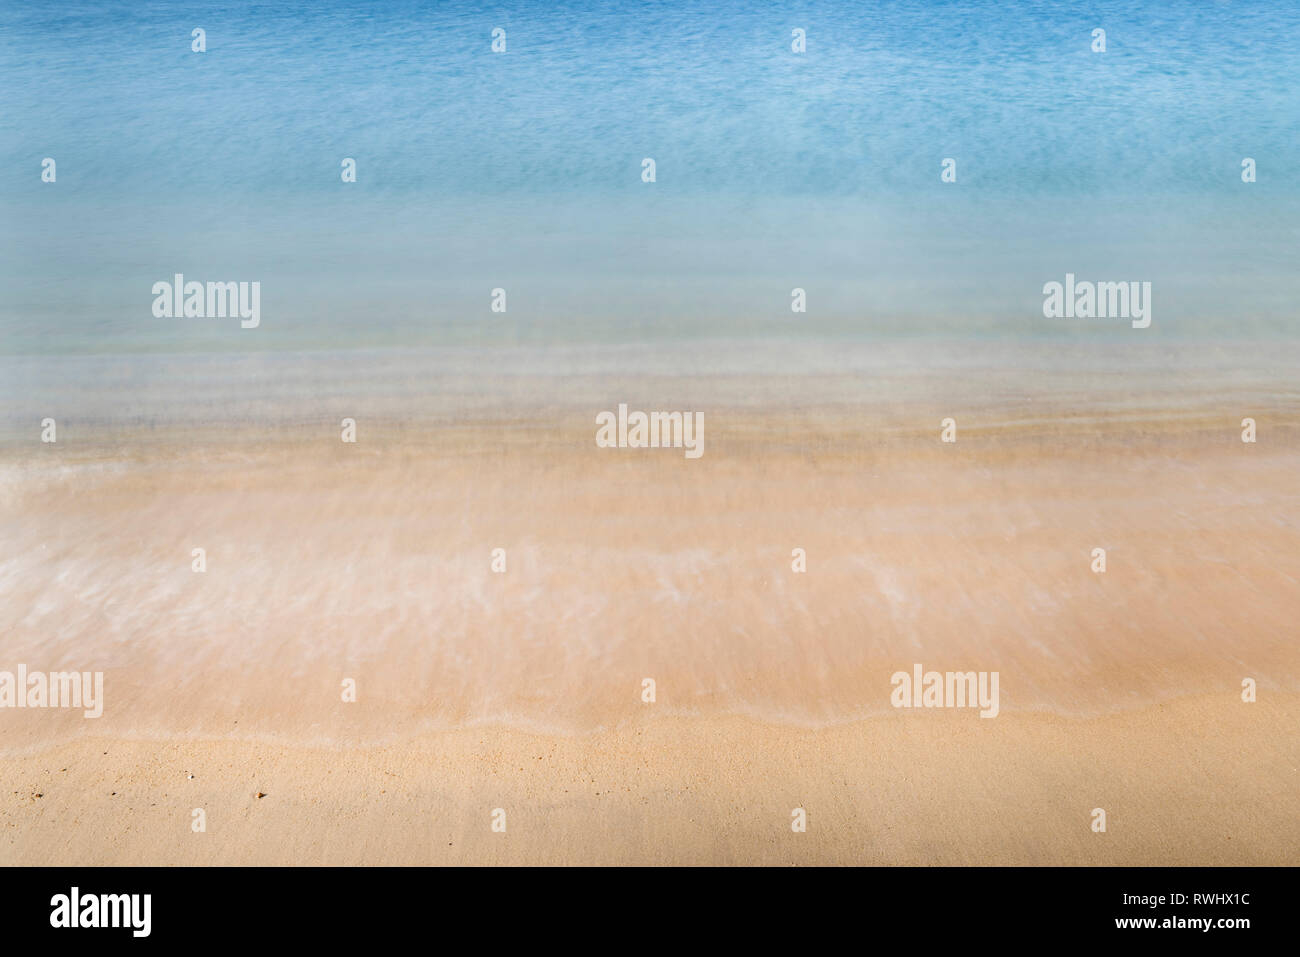 Abstract photo of motion blur of wave crashing on sand at a sandy beach - Stock Image